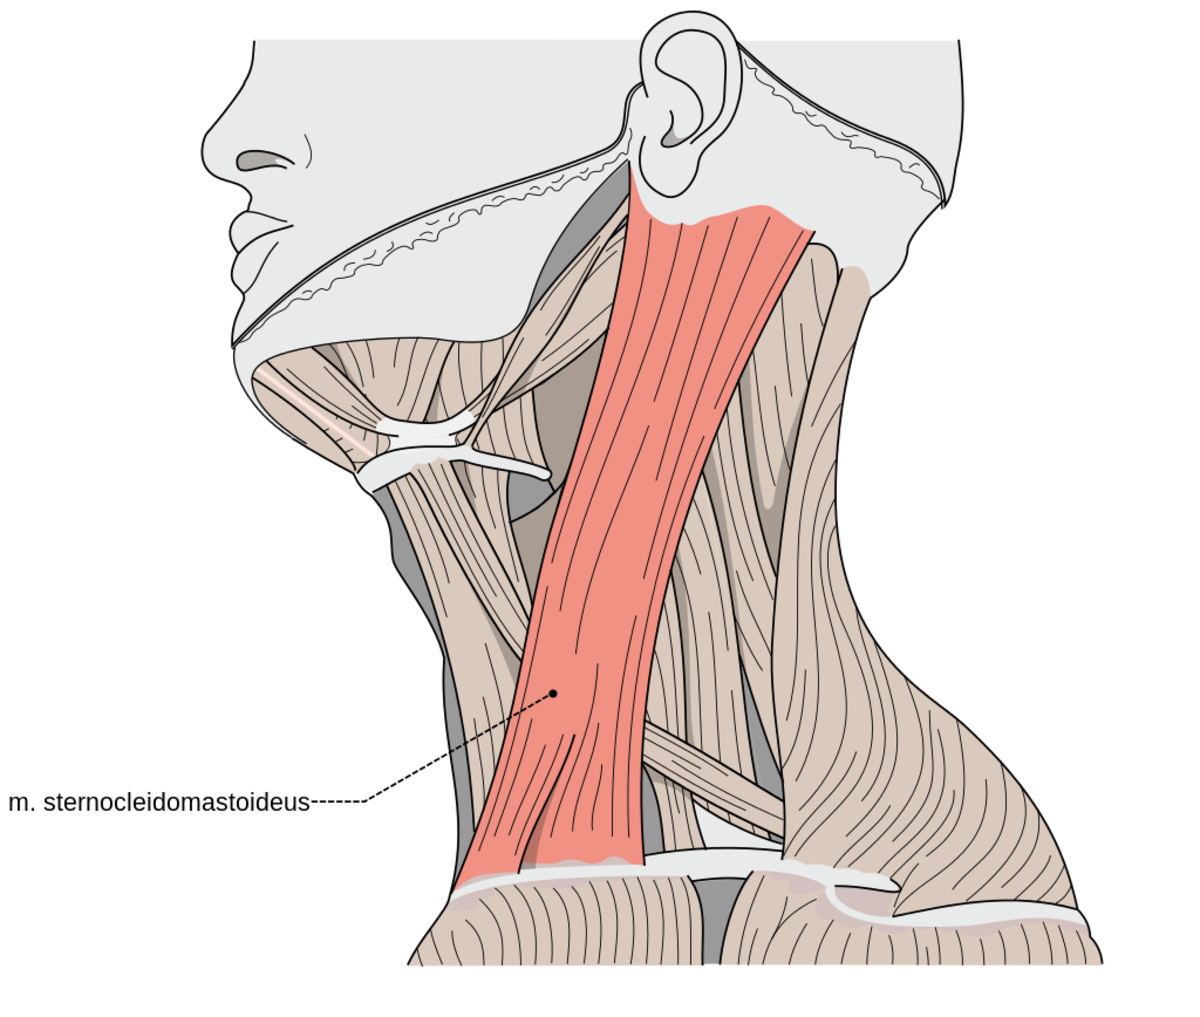 the-sternocleidomastoid-muscle-a-culprit-of-widespread-muscle-pain